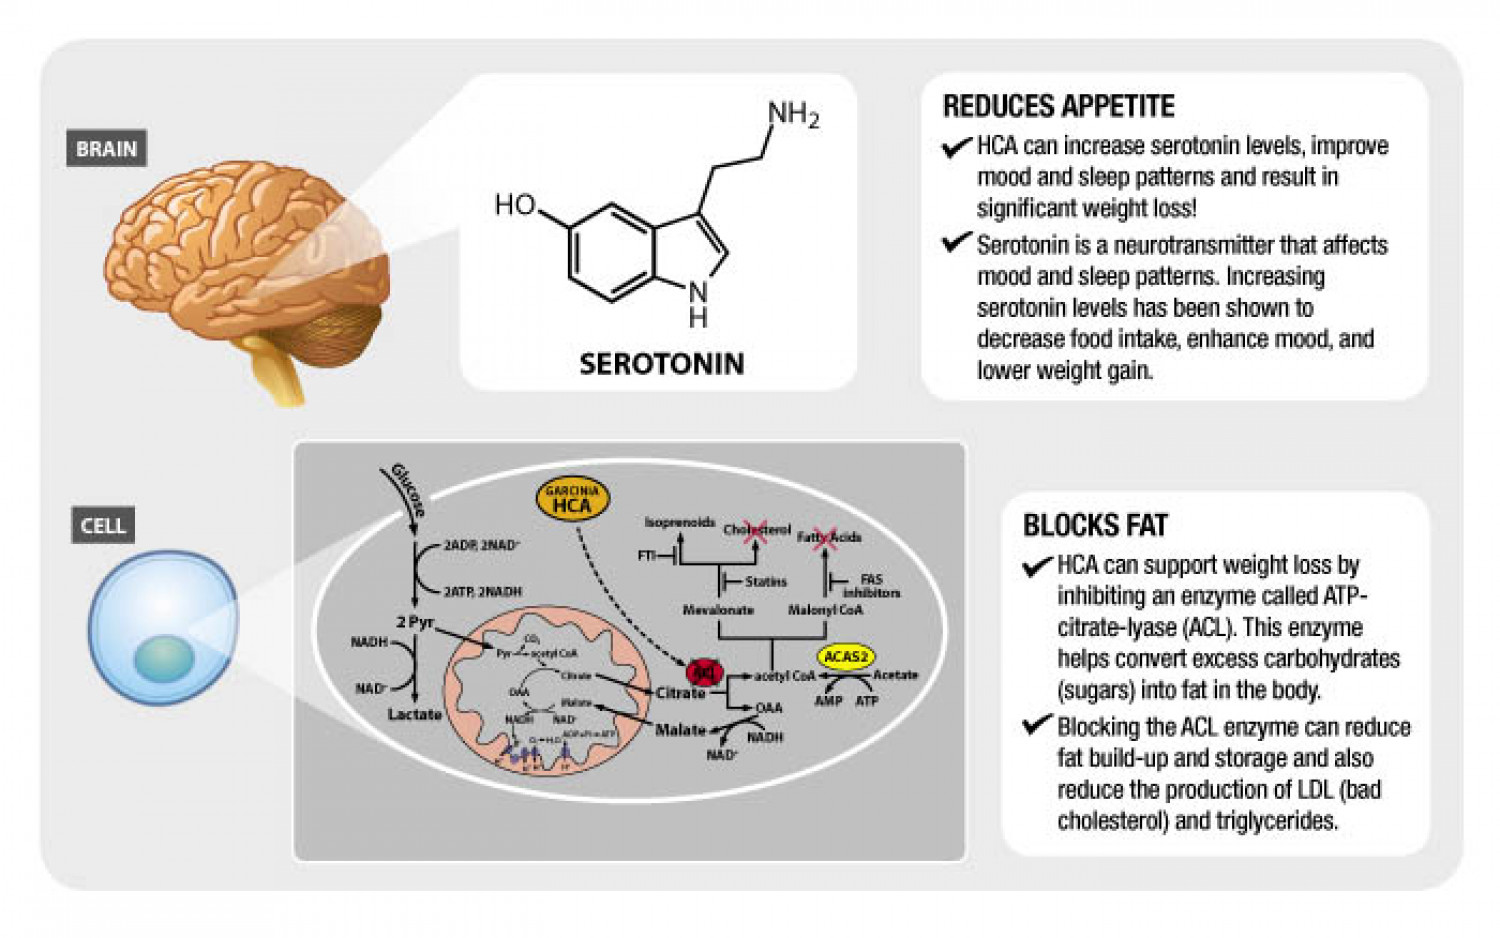 HOW DOES GARCINIA CAMBOGIA WORK TO SUPPORT WEIGHT LOSS? Infographic